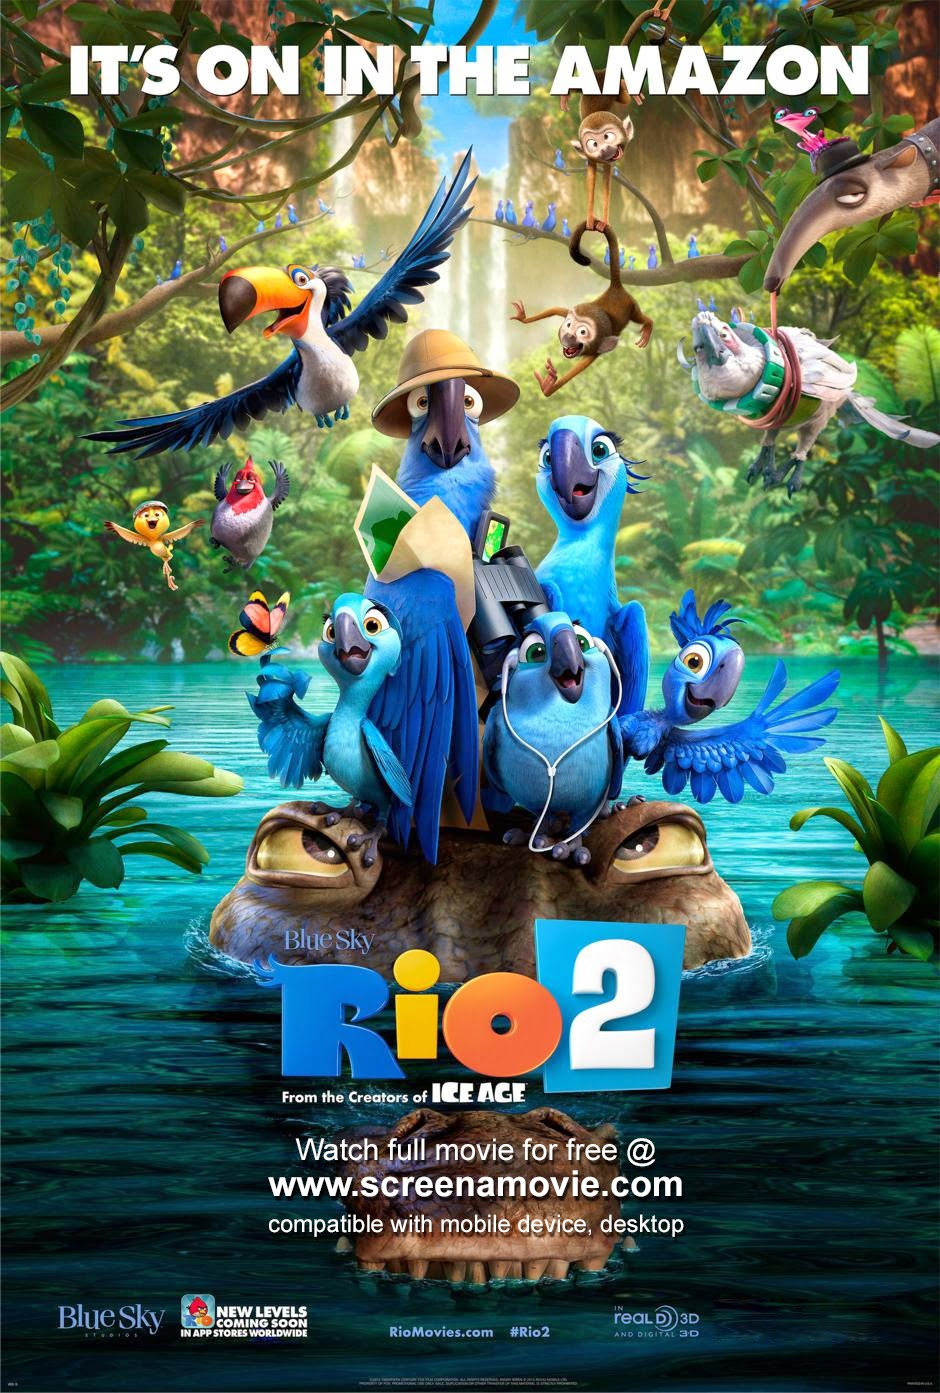 Rio 2_@screenamovie